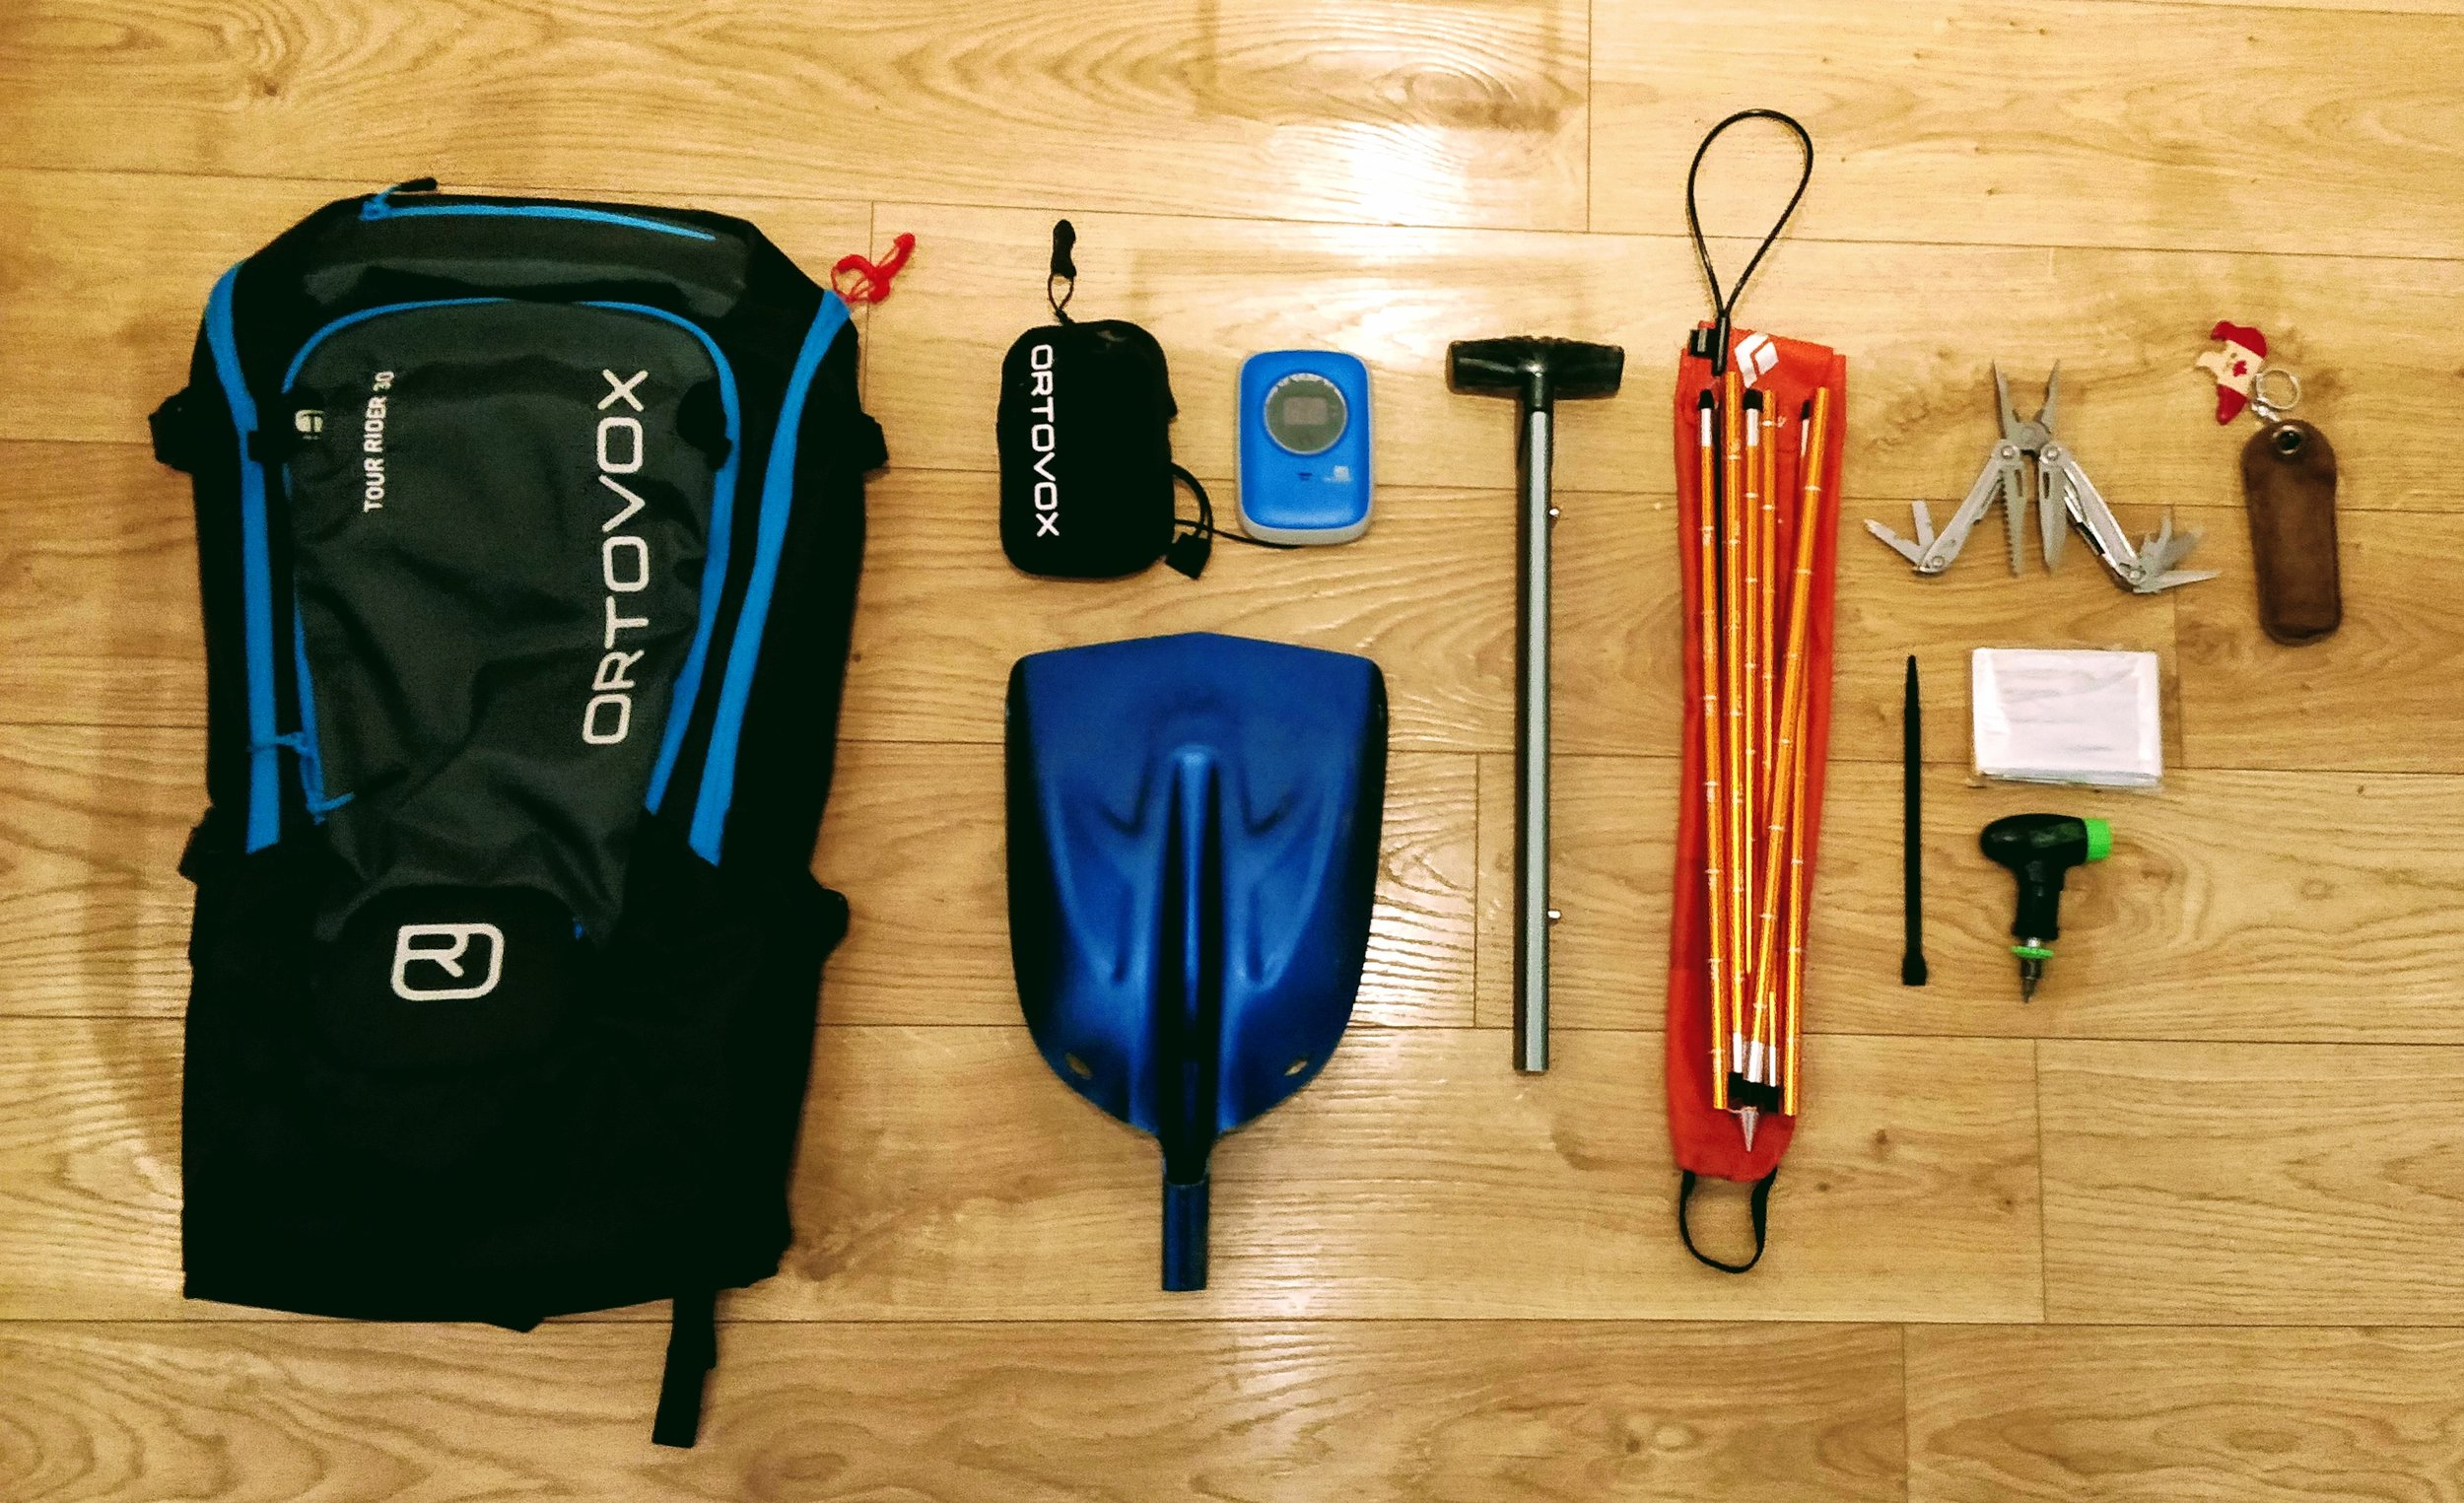 Basic safety gear, from left: 30l backpack, 3 antenna transceiver, shovel head, shovel handle, 265cm tour probe, Leatherman multitool, foil blanket, cable tie, and snowboard tool